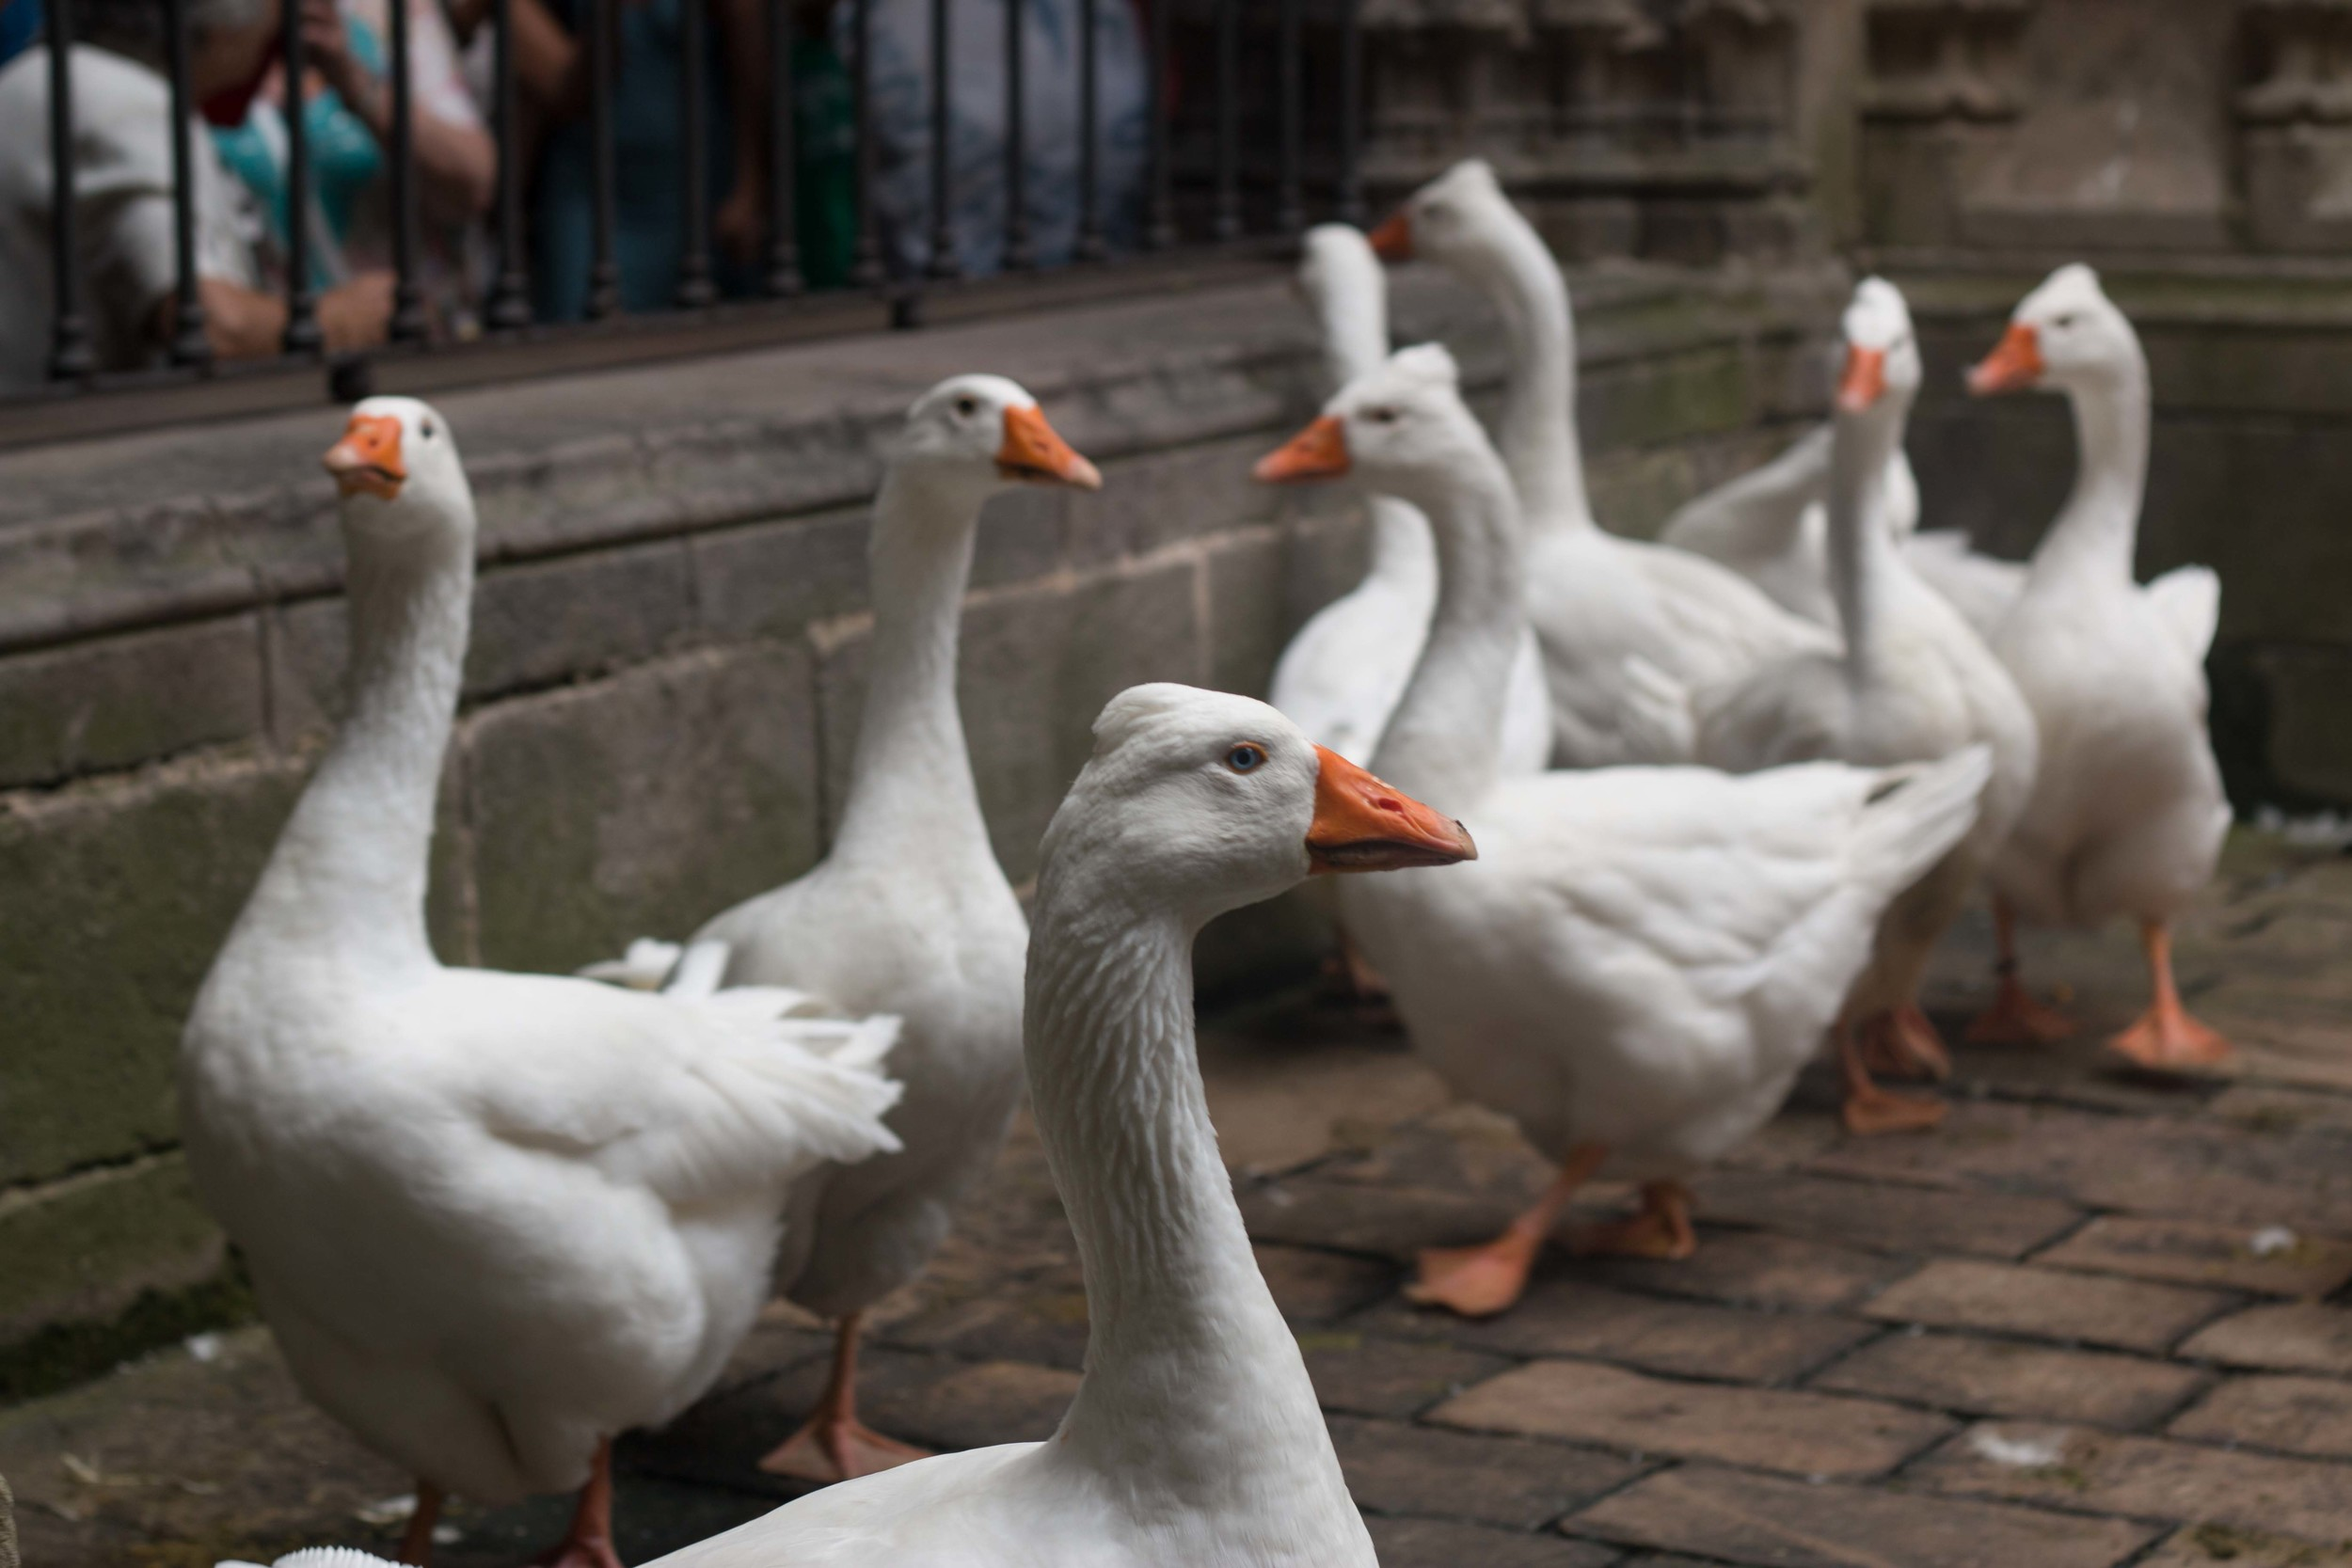 8 of the 13 Geese kept in the Cloister courtyard to commemorate Saint Eulalia's sacrifice